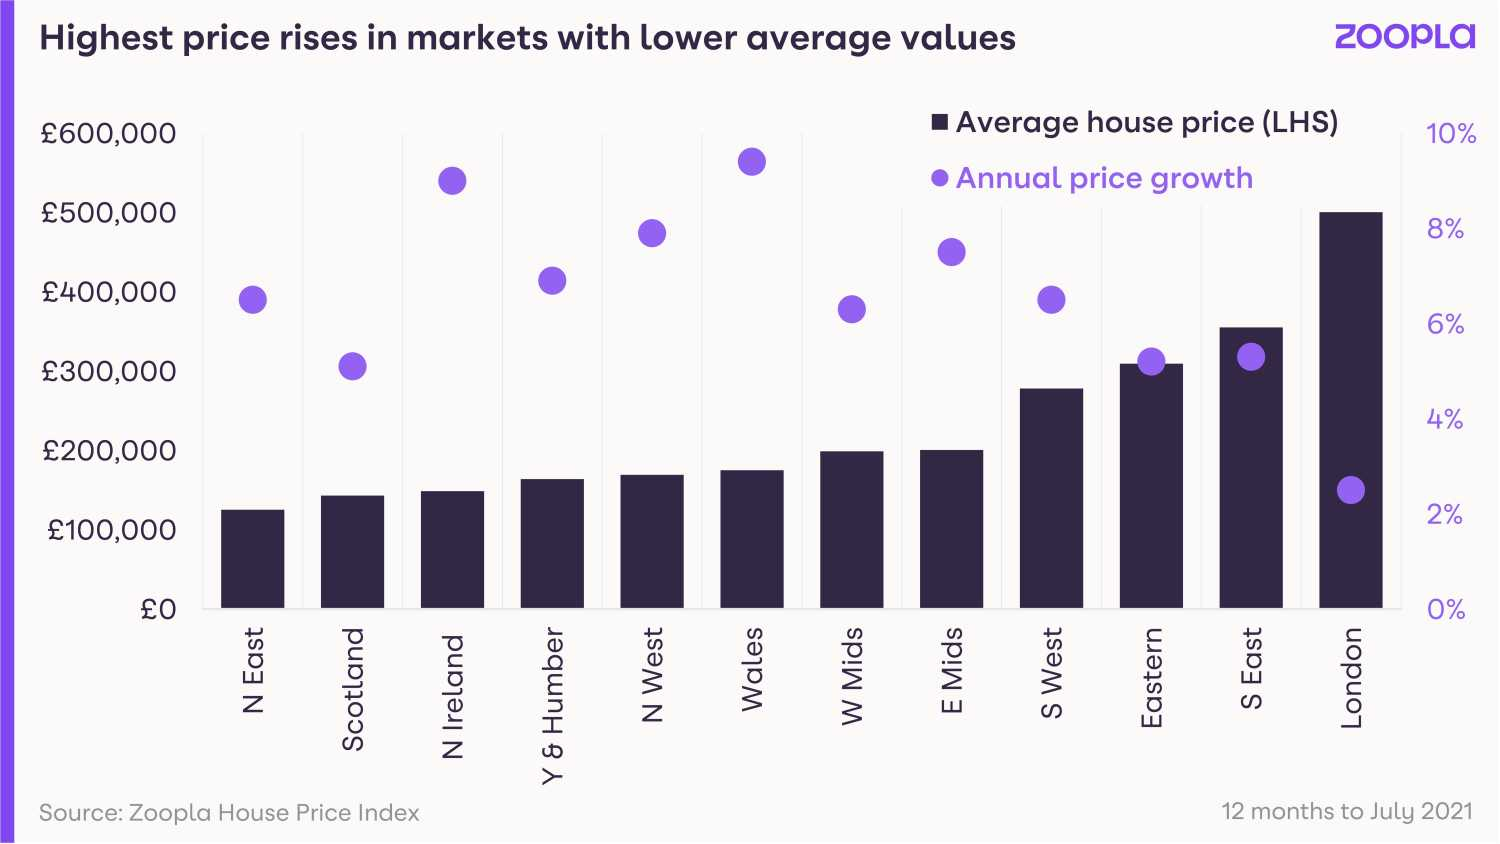 Highest price rises in markets with lower average values